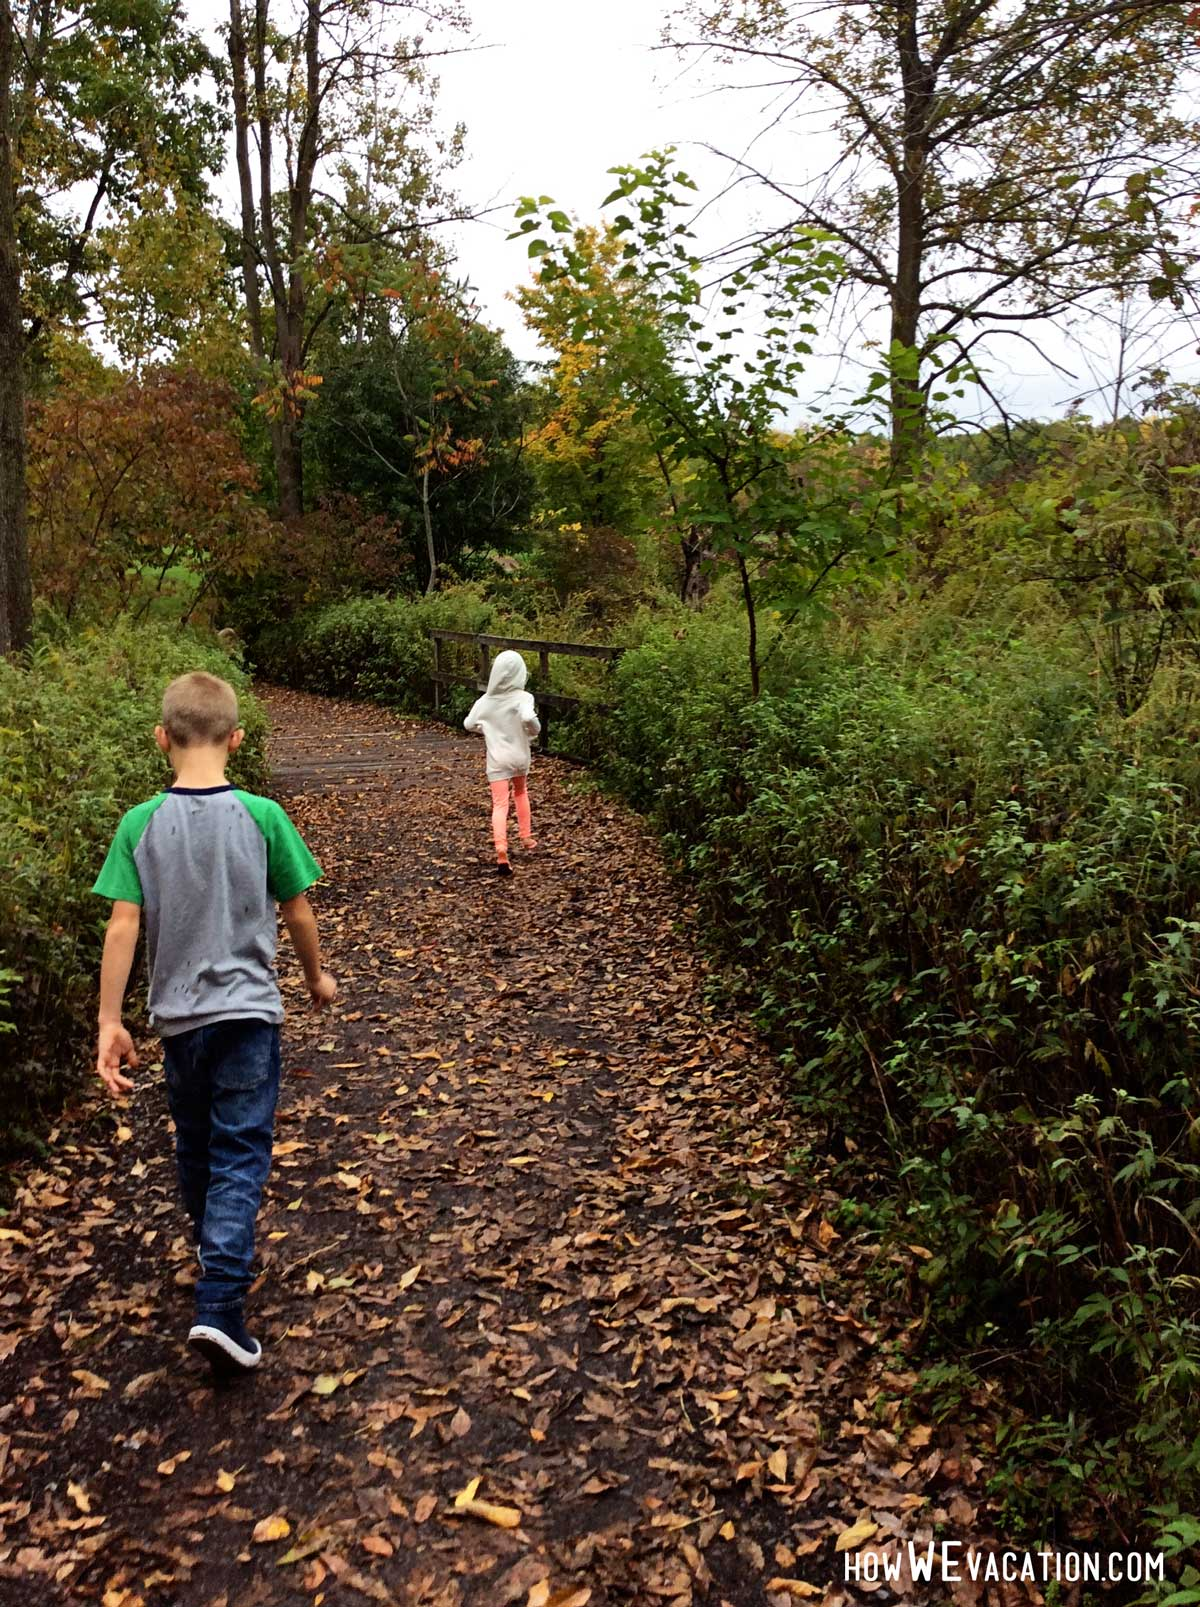 Walking through the Sacred Grove